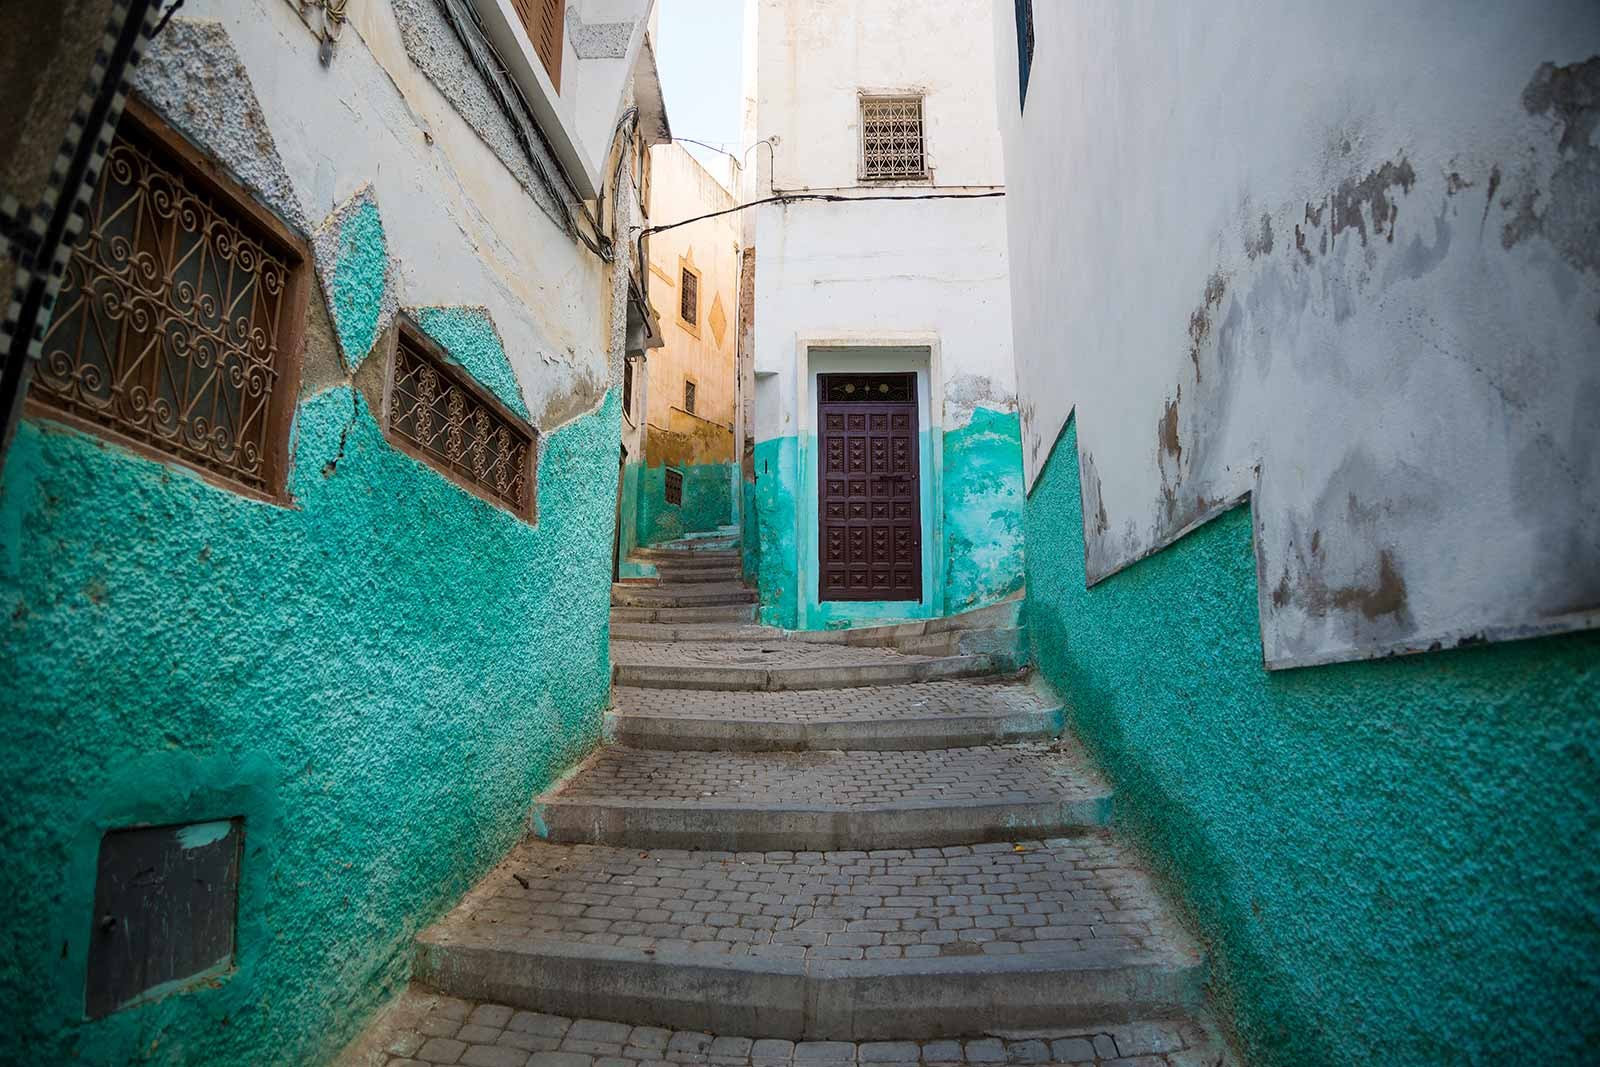 The colourful streets of Moulay Idriss seem like another Chefchaouen, but instead of blue, cyan is the main colour in use here.